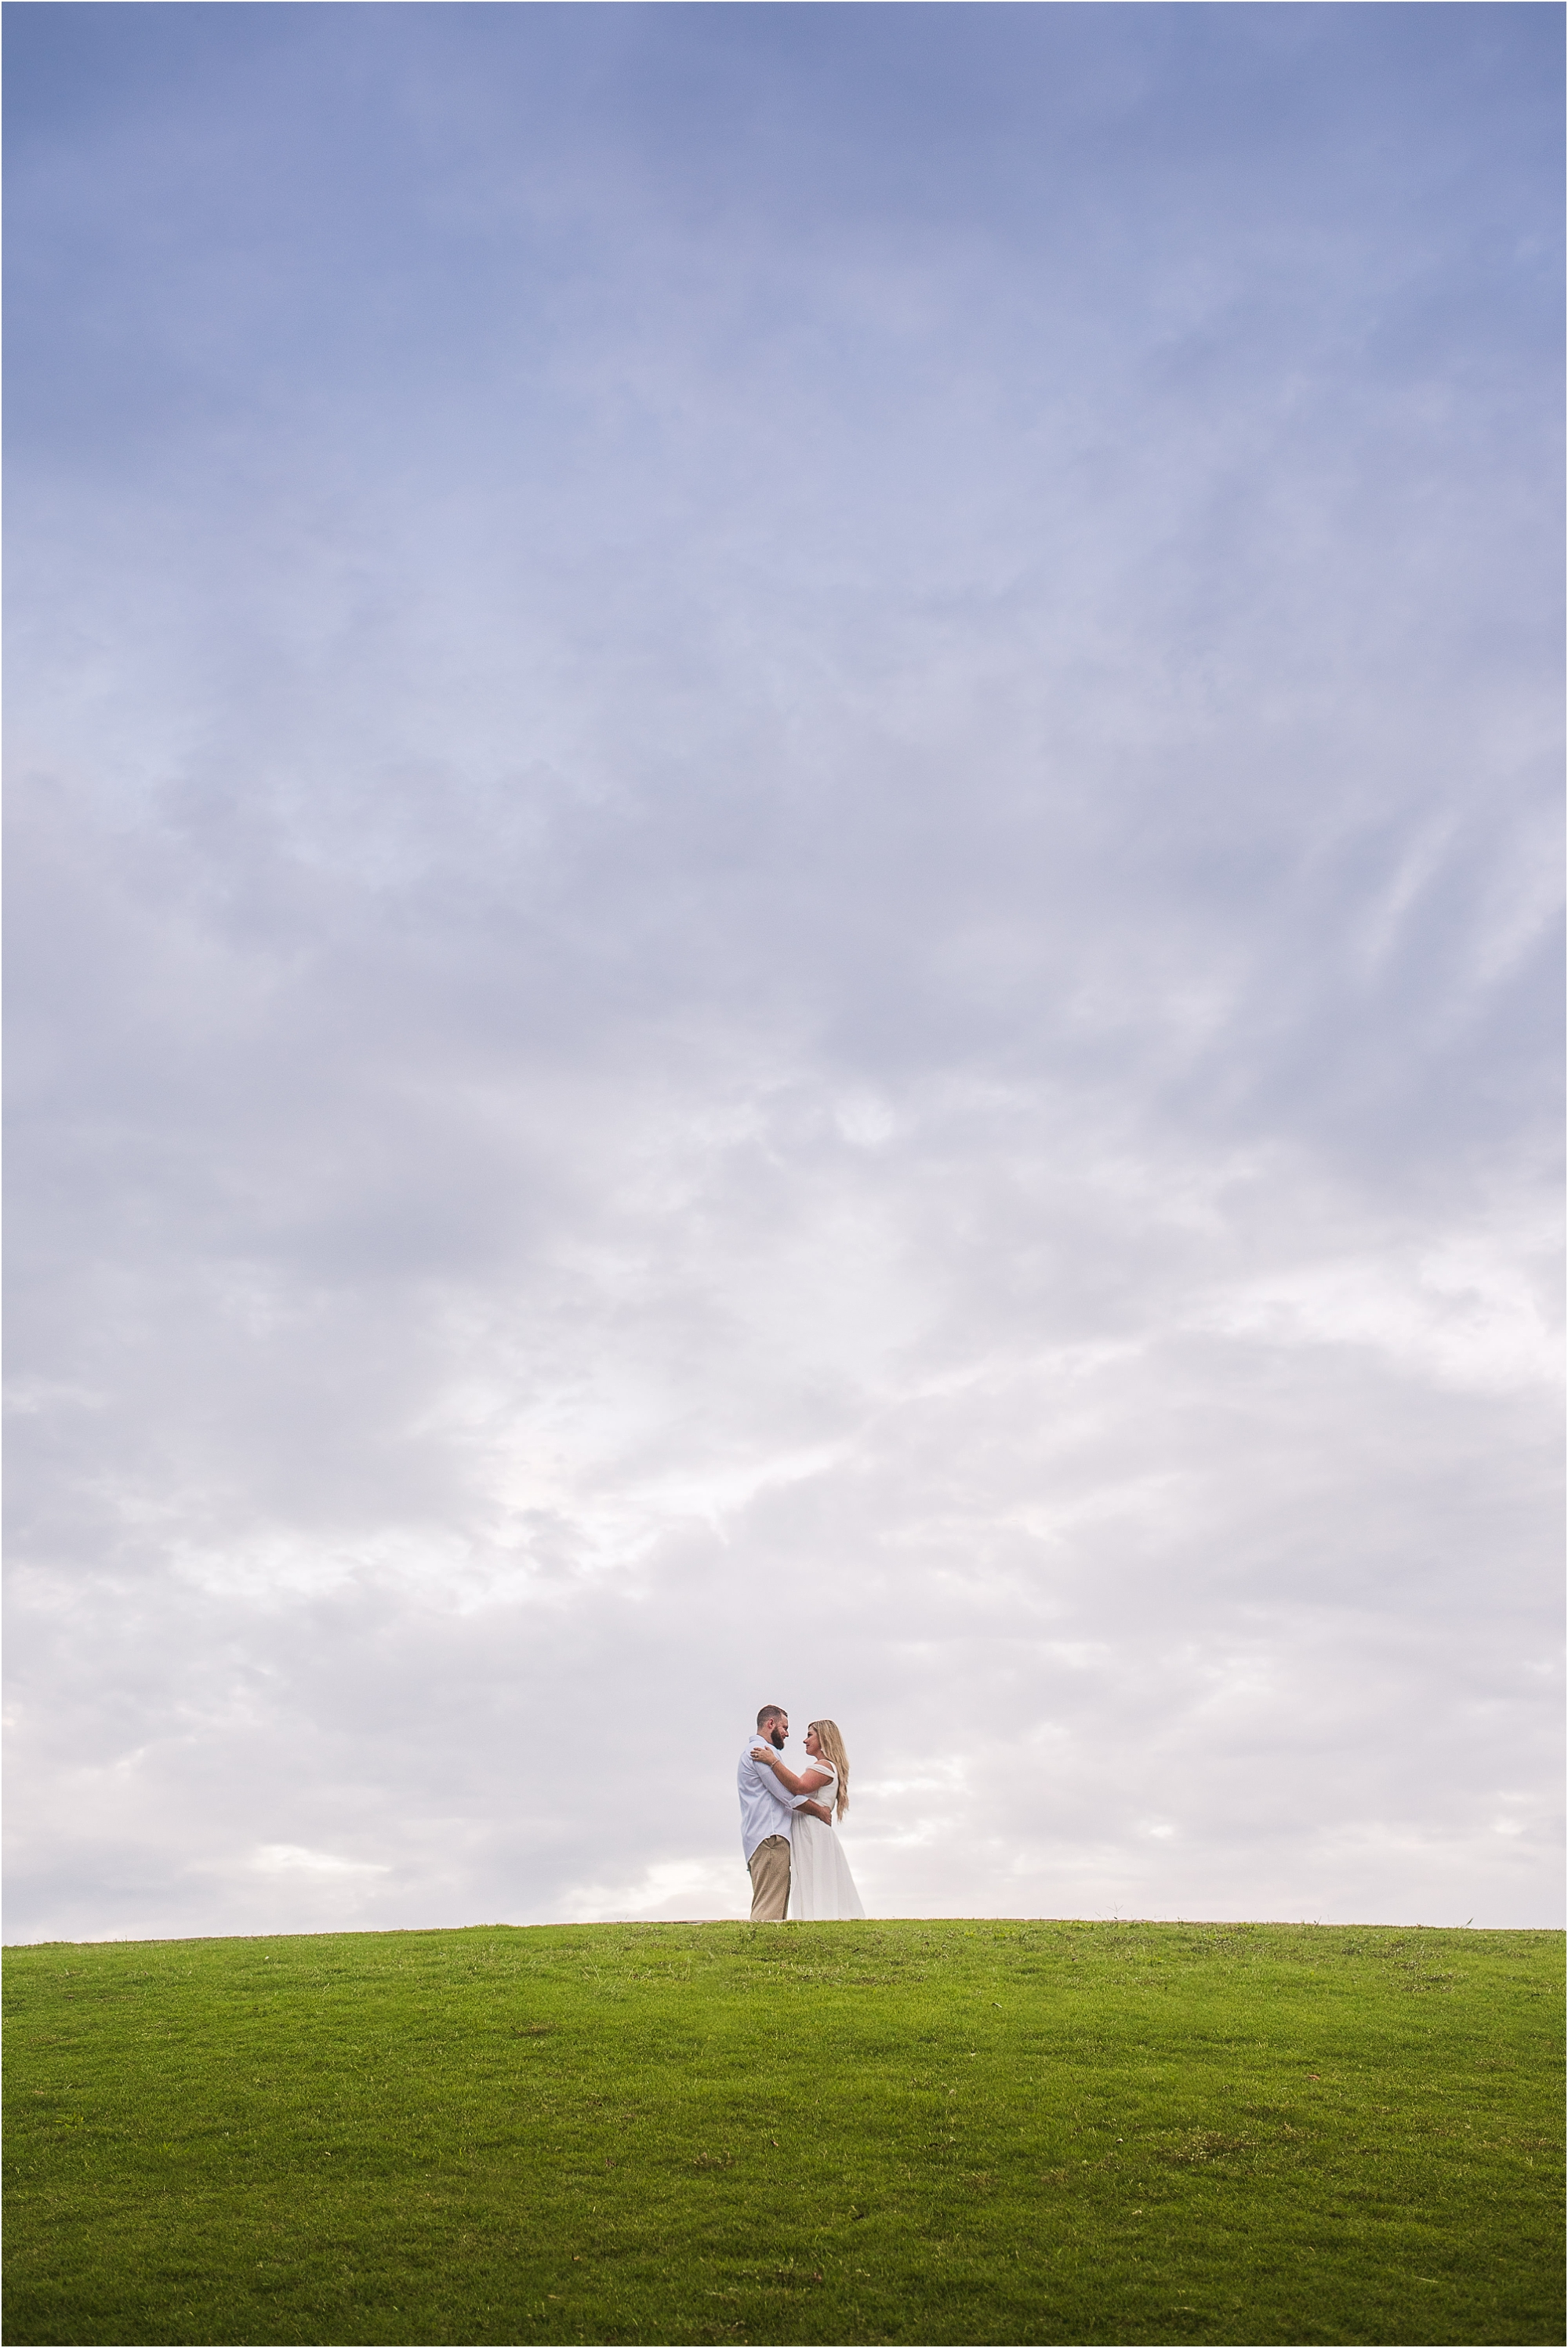 south pointe park-anniversary outdoor photo session-jessenia-gonzalez-weddings_1329.jpg